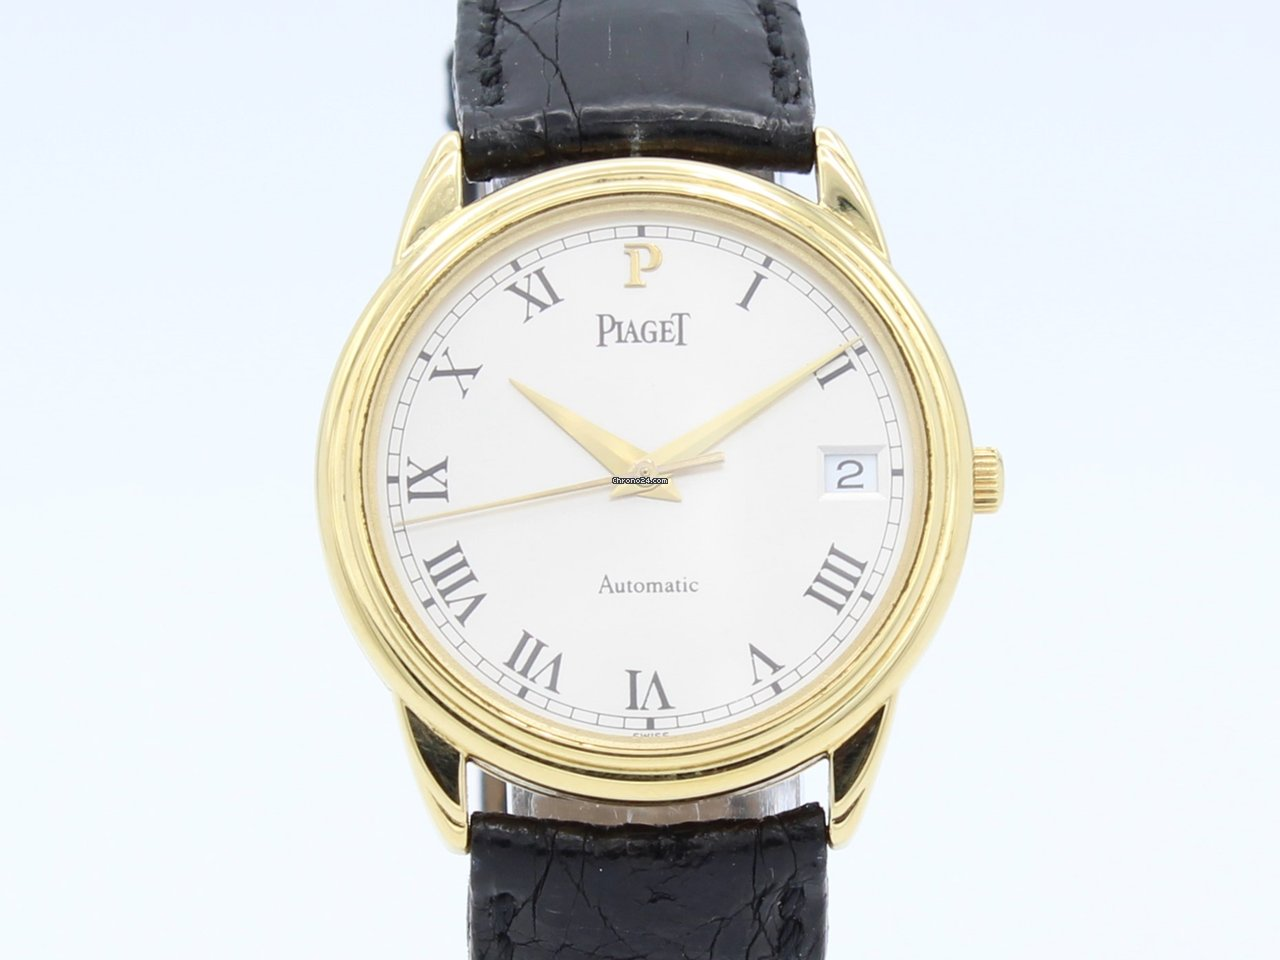 2083547a6d147 Piaget Gouverneur Automatic 18K Gold 15988 for  2